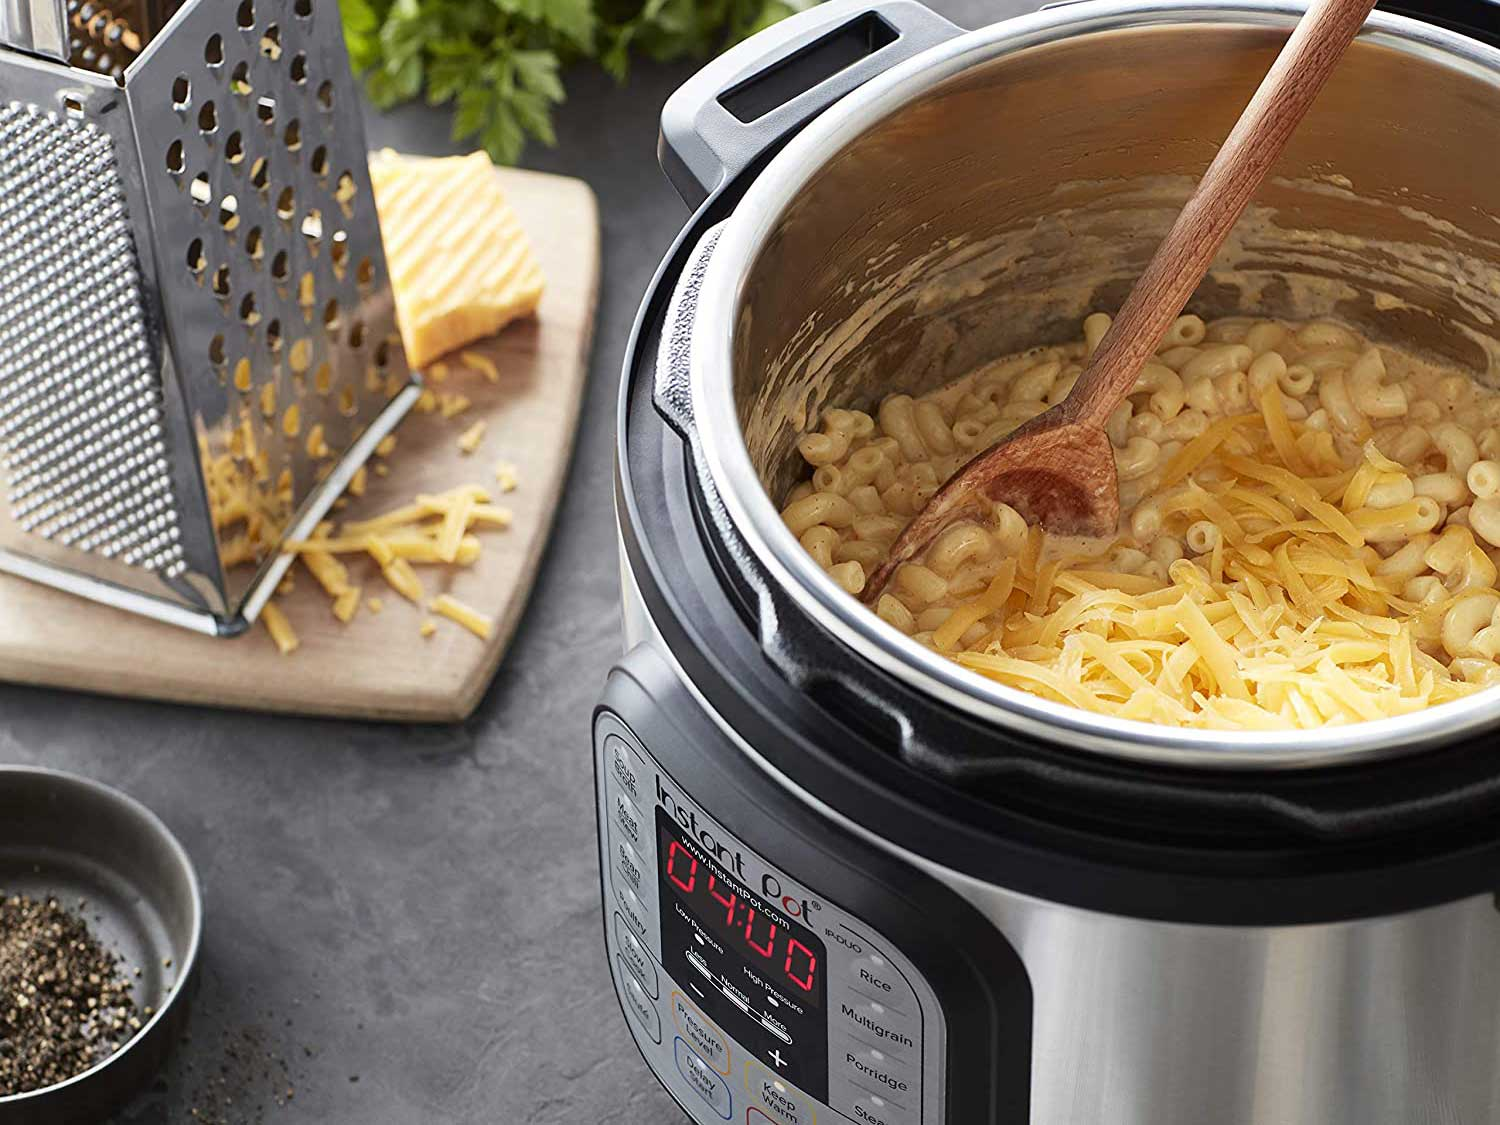 Instant pot cooking mac and cheese.